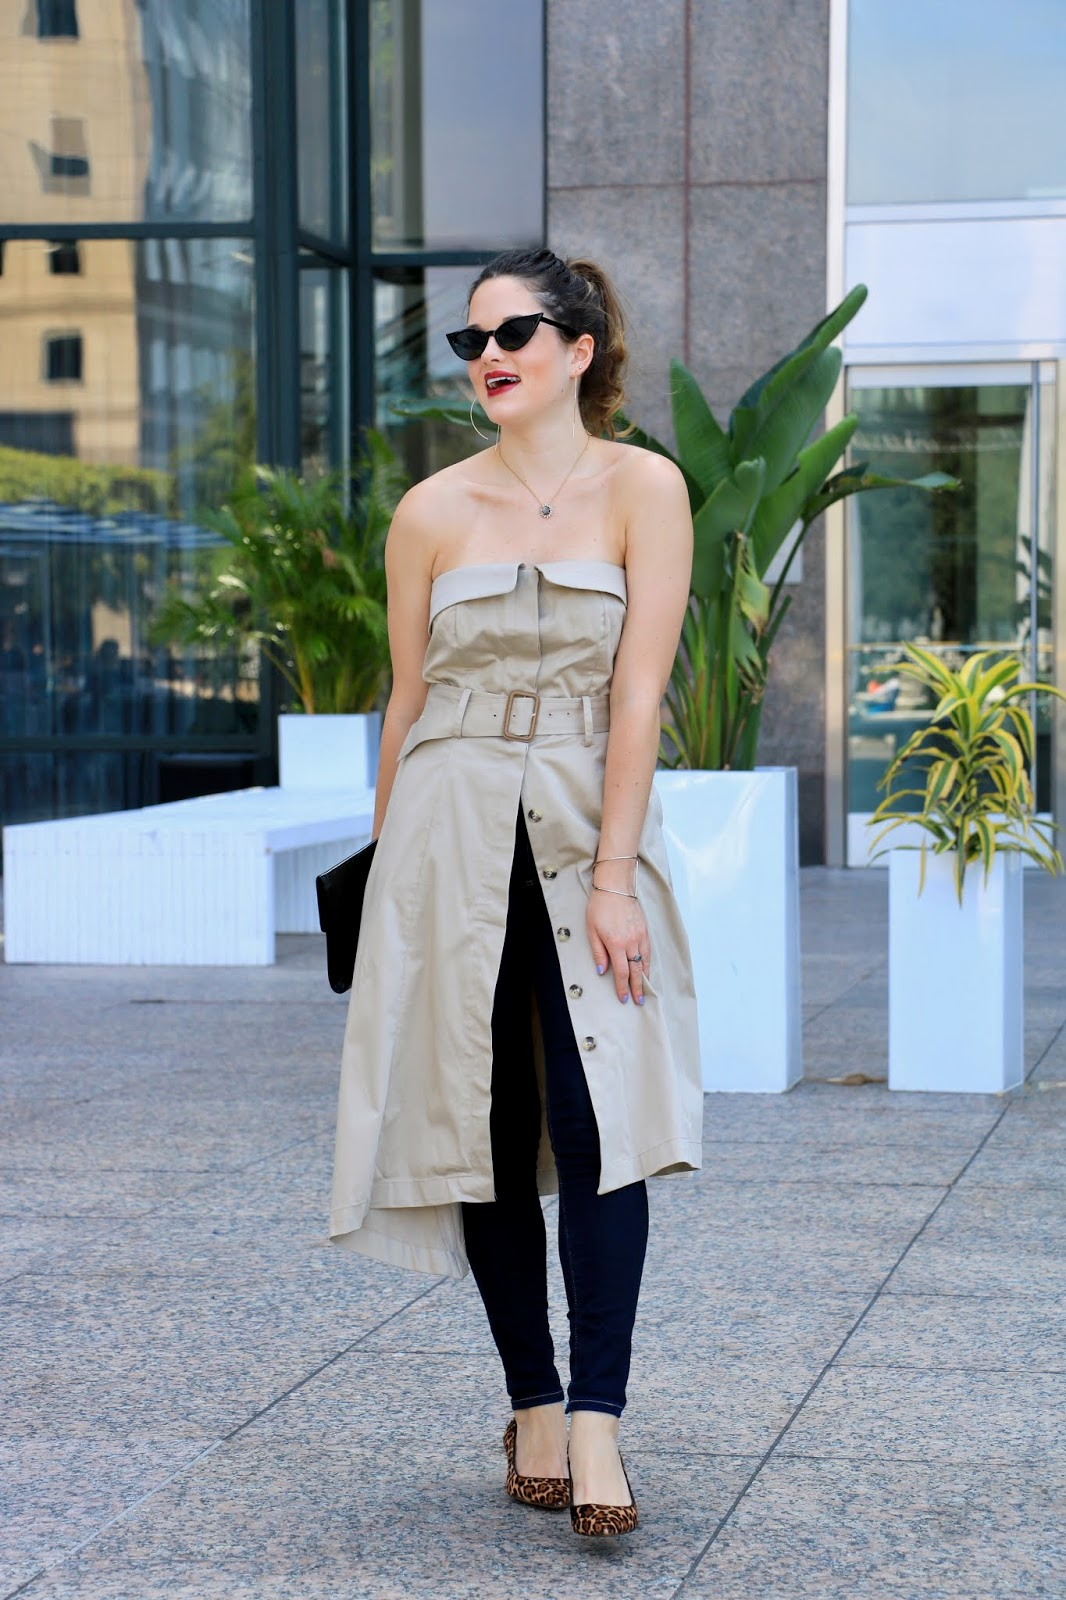 Nyc fashion blogger Kathleen Harper wearing a trench dress with jeans